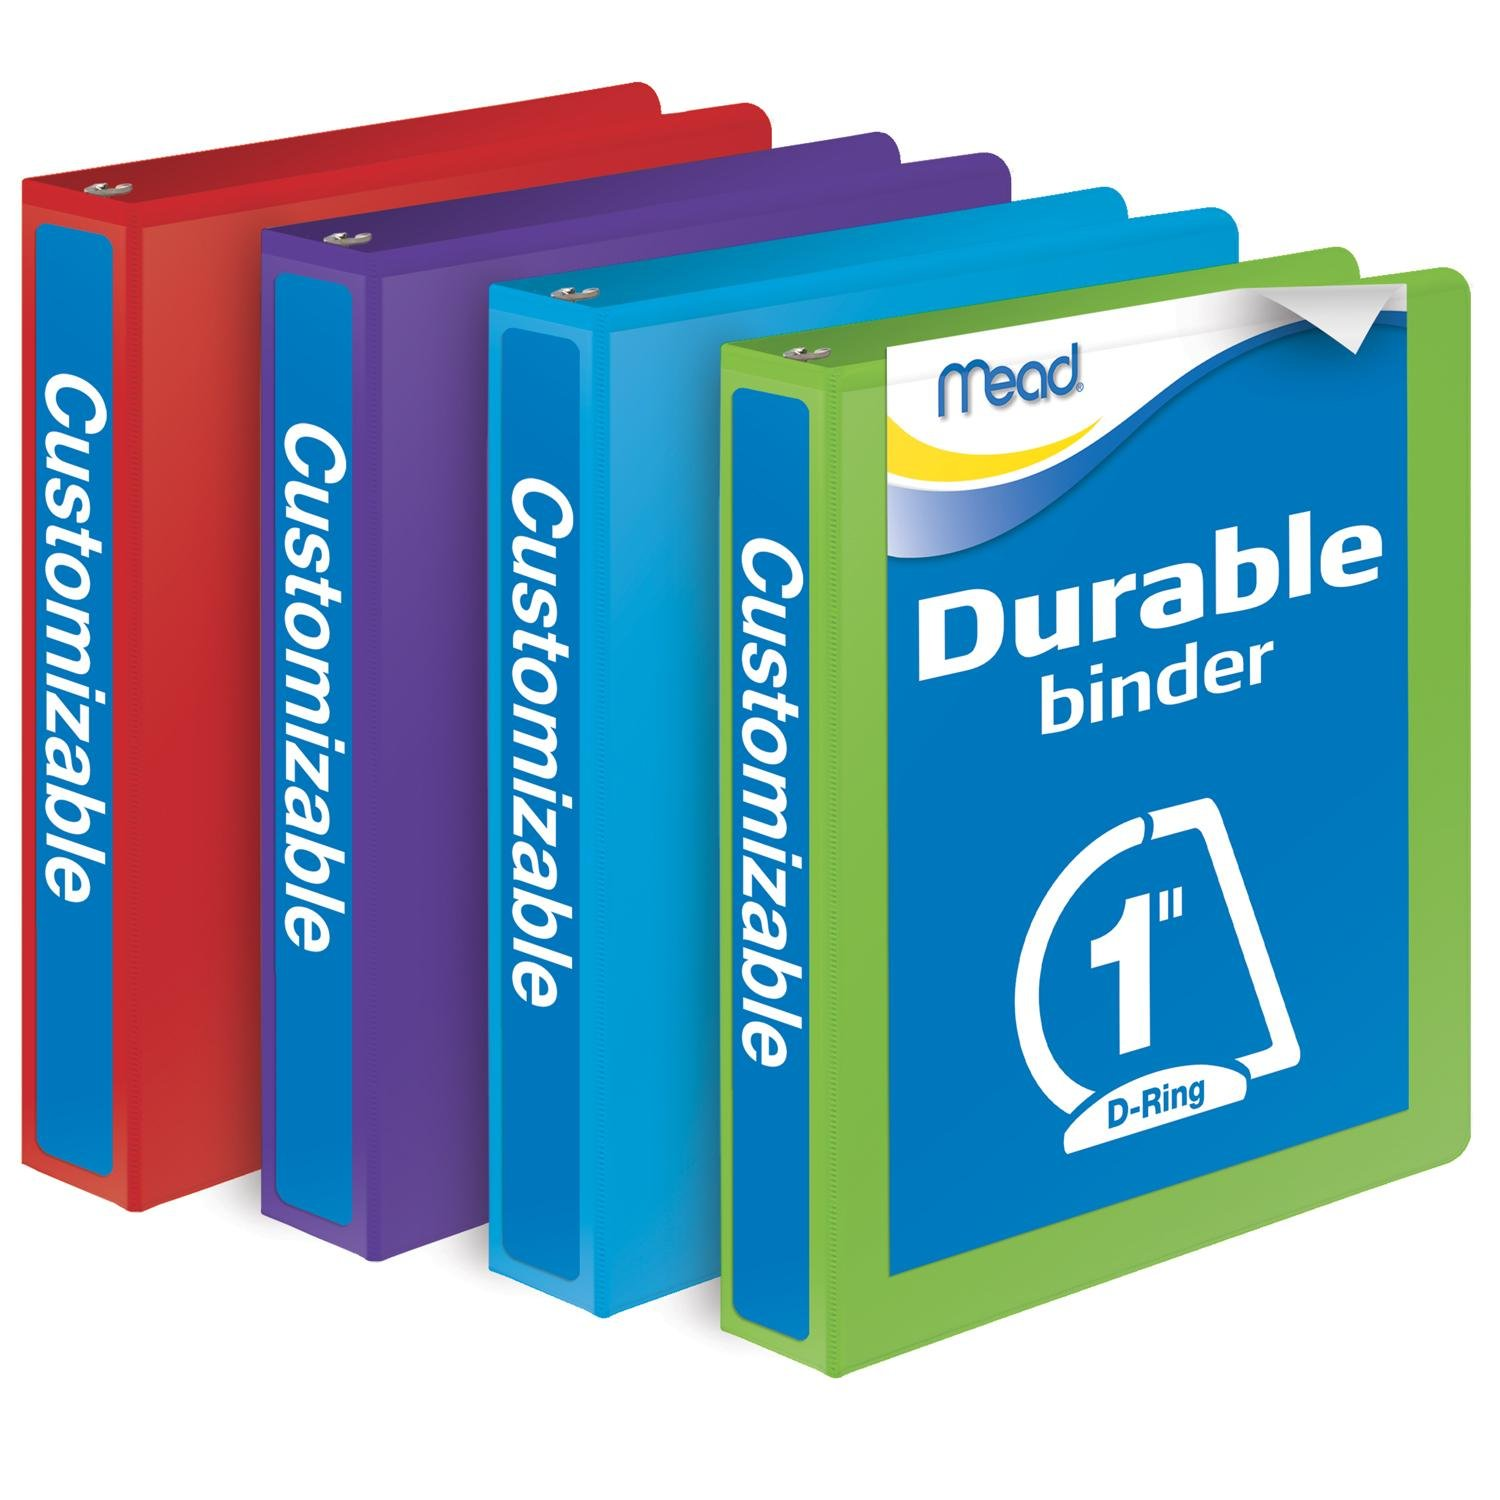 Mead 1 Inch Binders, D Ring Binder, Durable, Customizable, Assorted Colors, 4 Pack (W465-14APP)